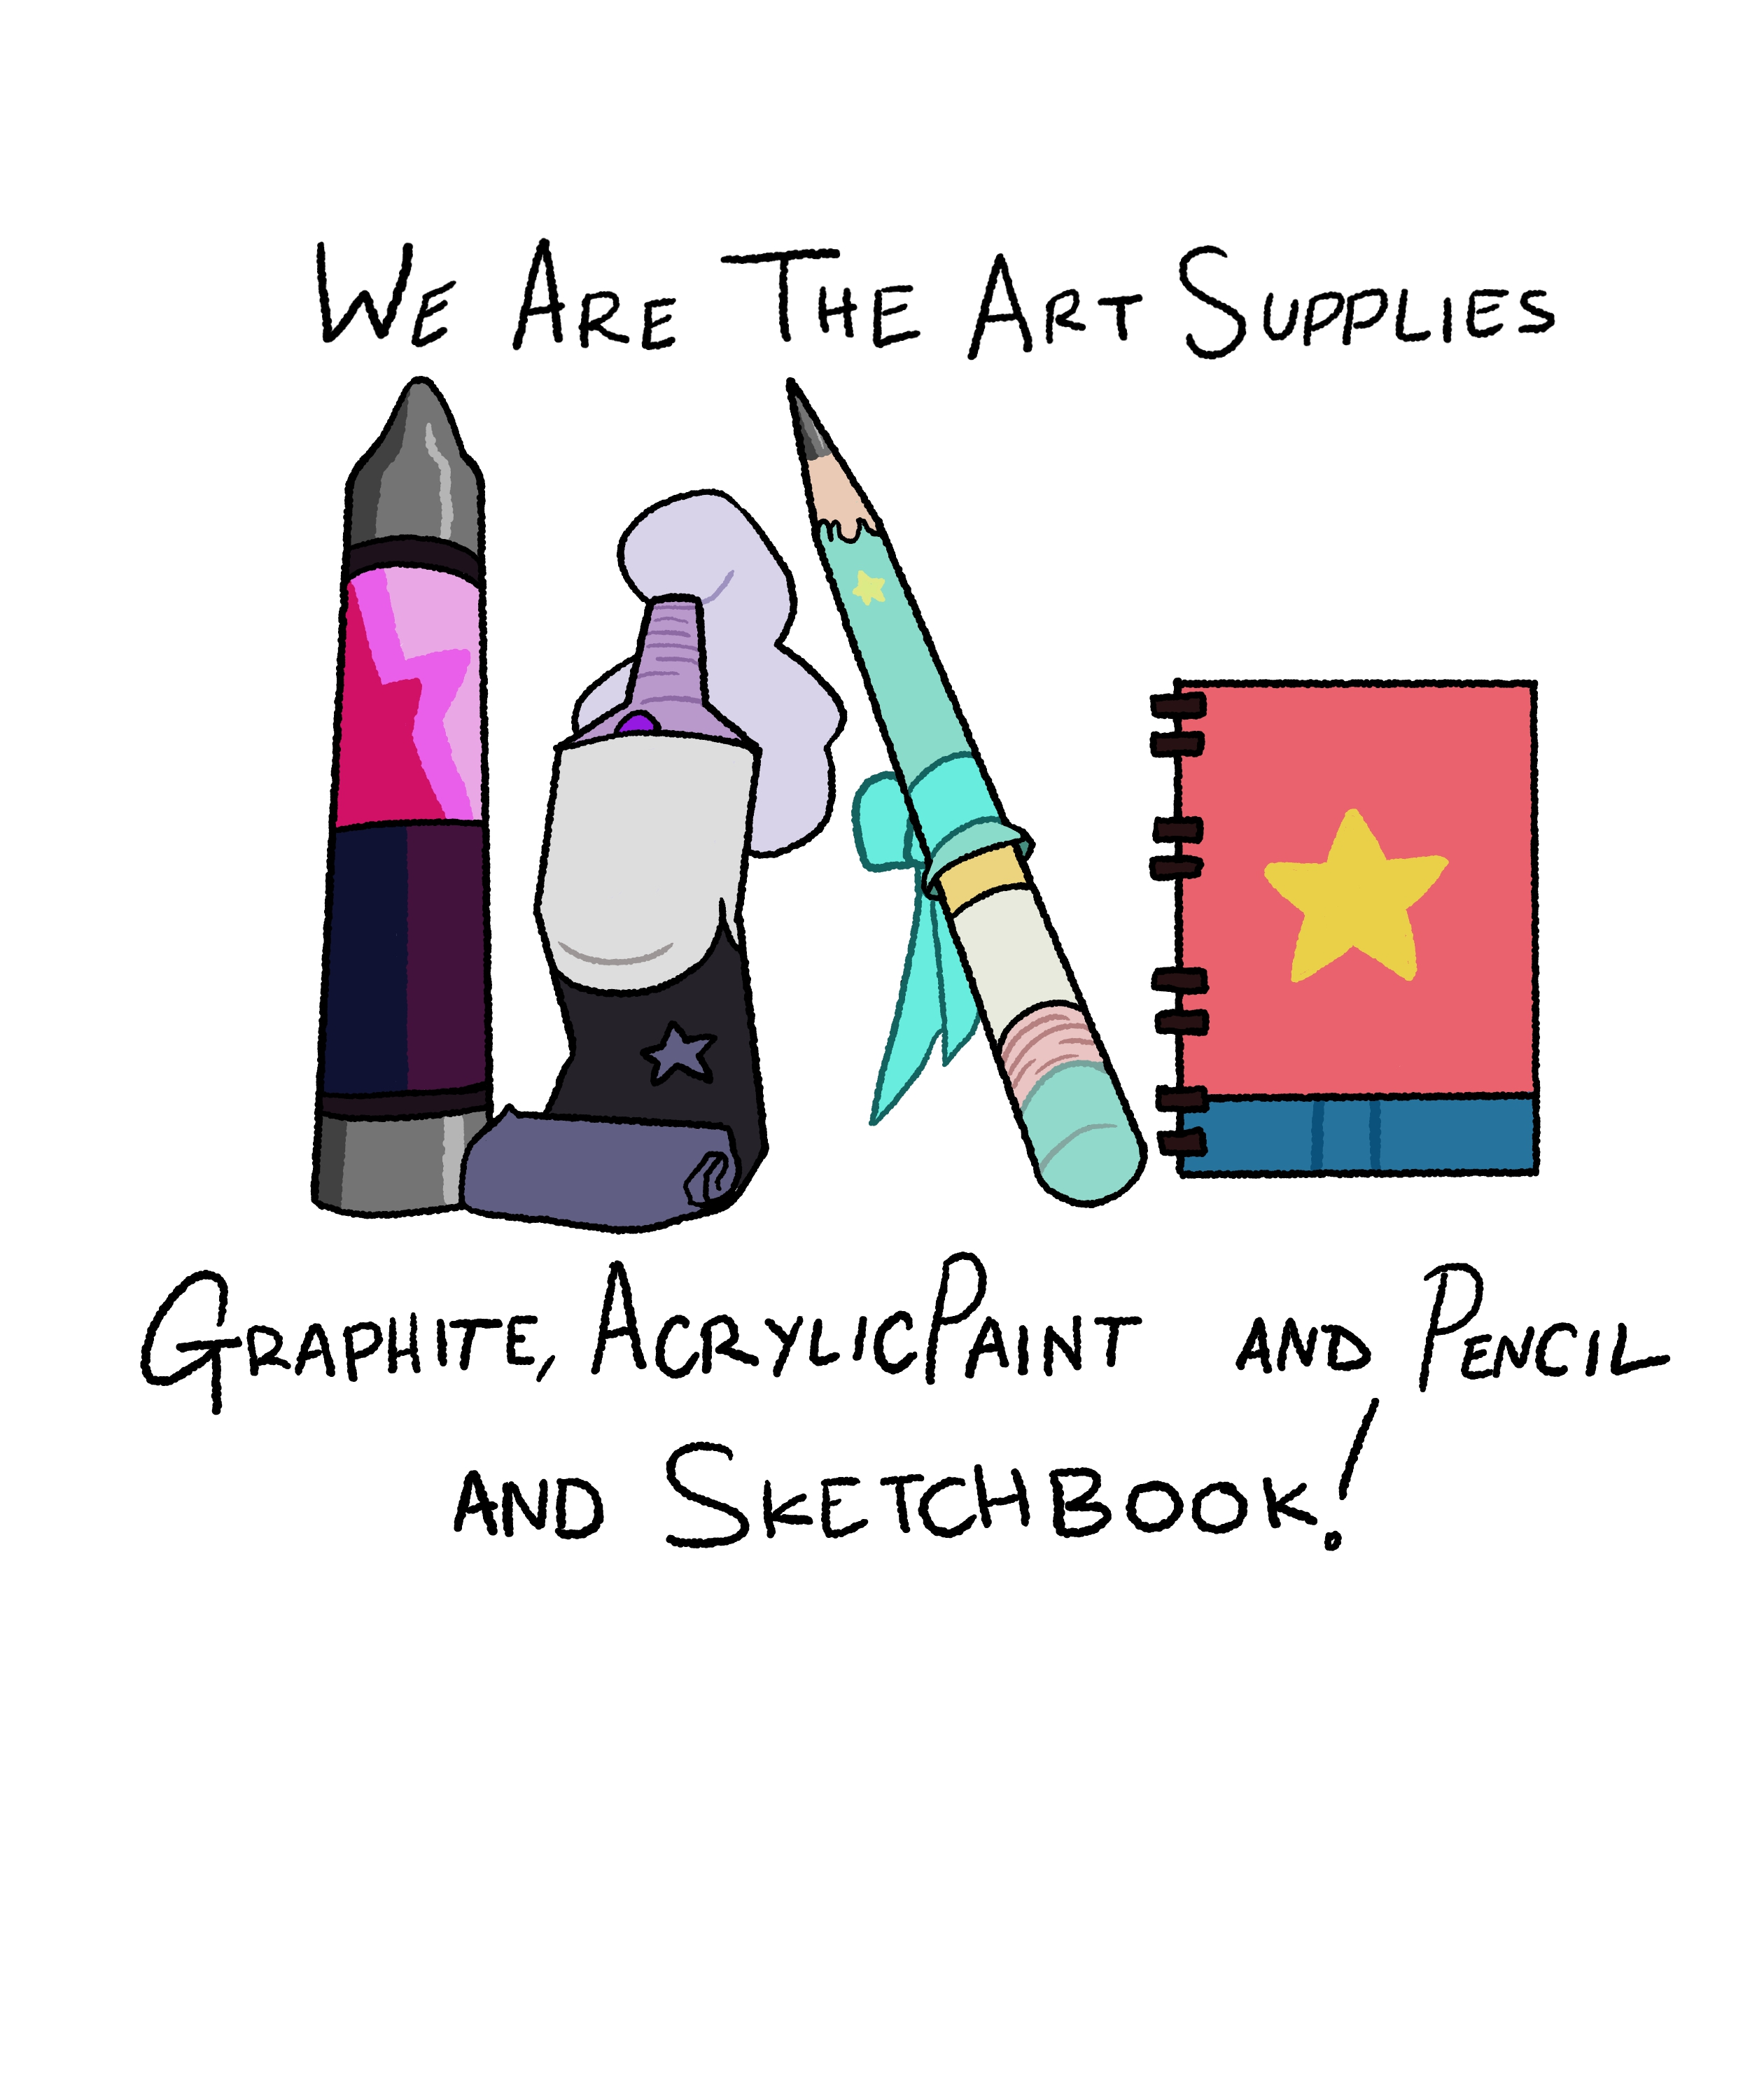 We Are The Art Supplies